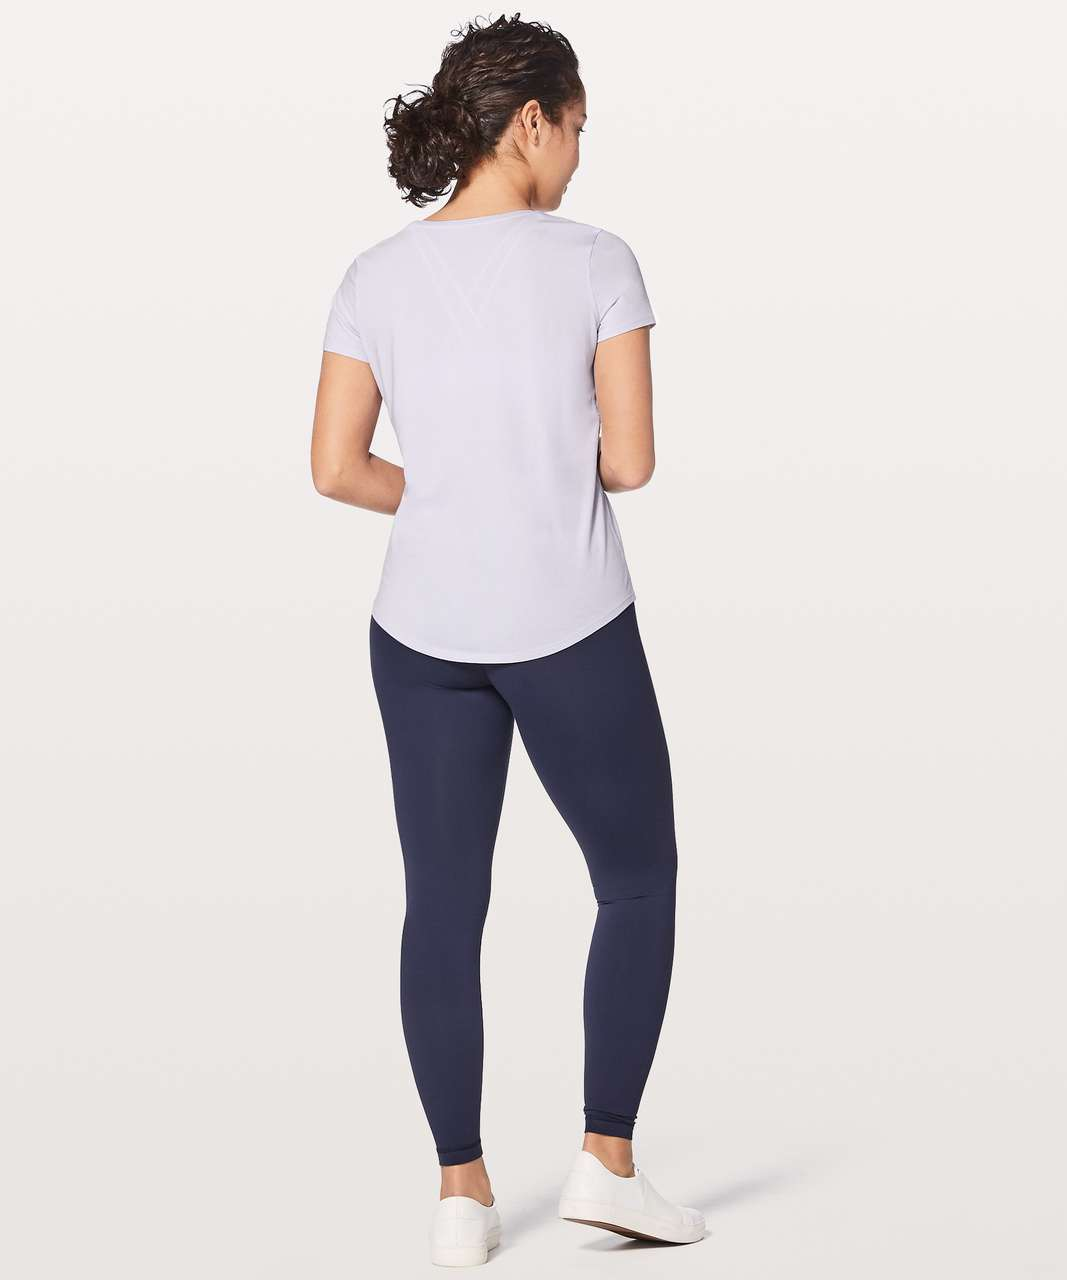 Lululemon Love Tee V - Serene Blue